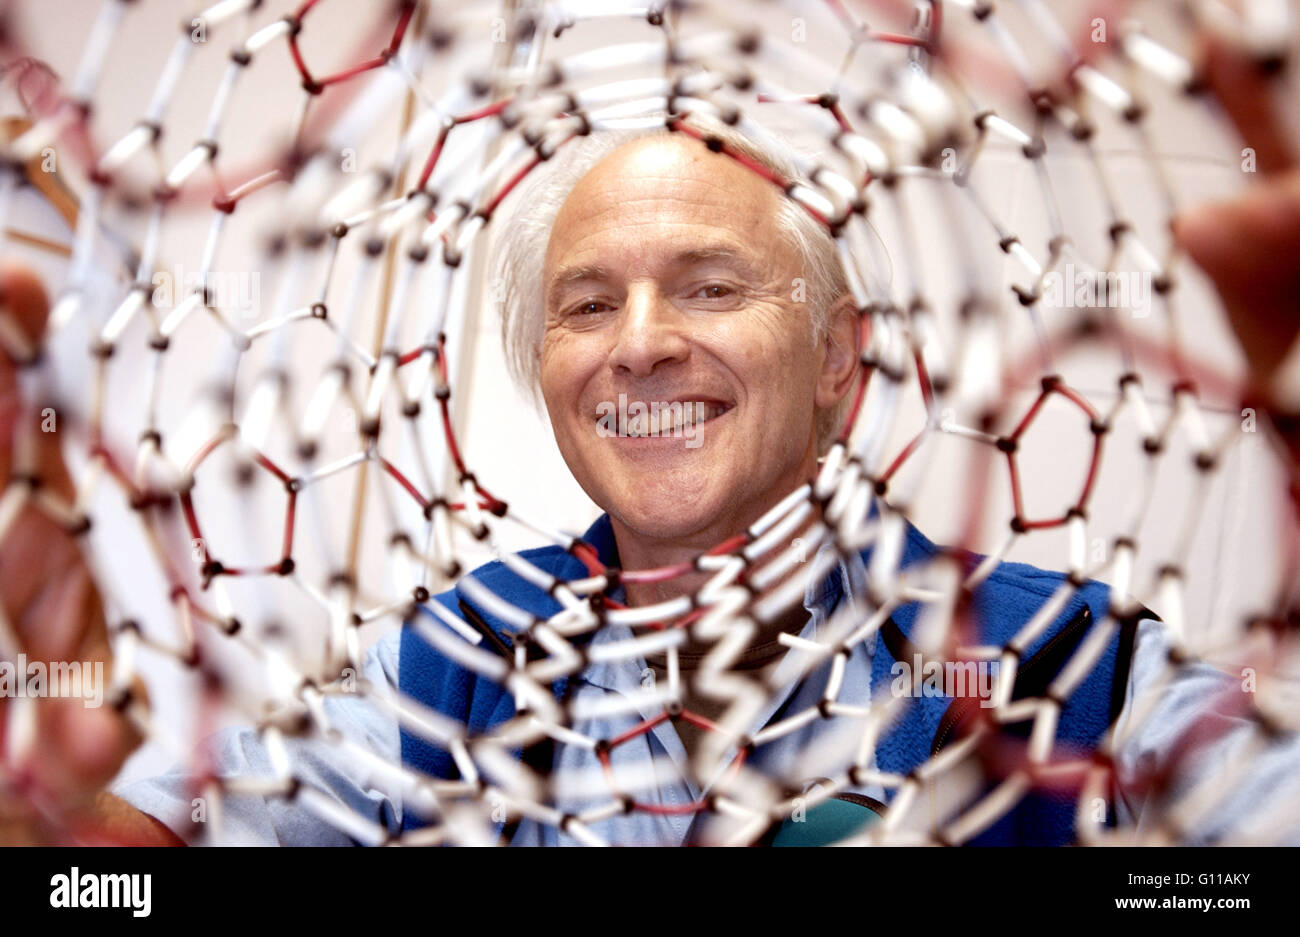 Sussex University, Brighton, England, UK. September 2004. Portrait of Sir Harry Kroto, one of the team of chemists Stock Photo